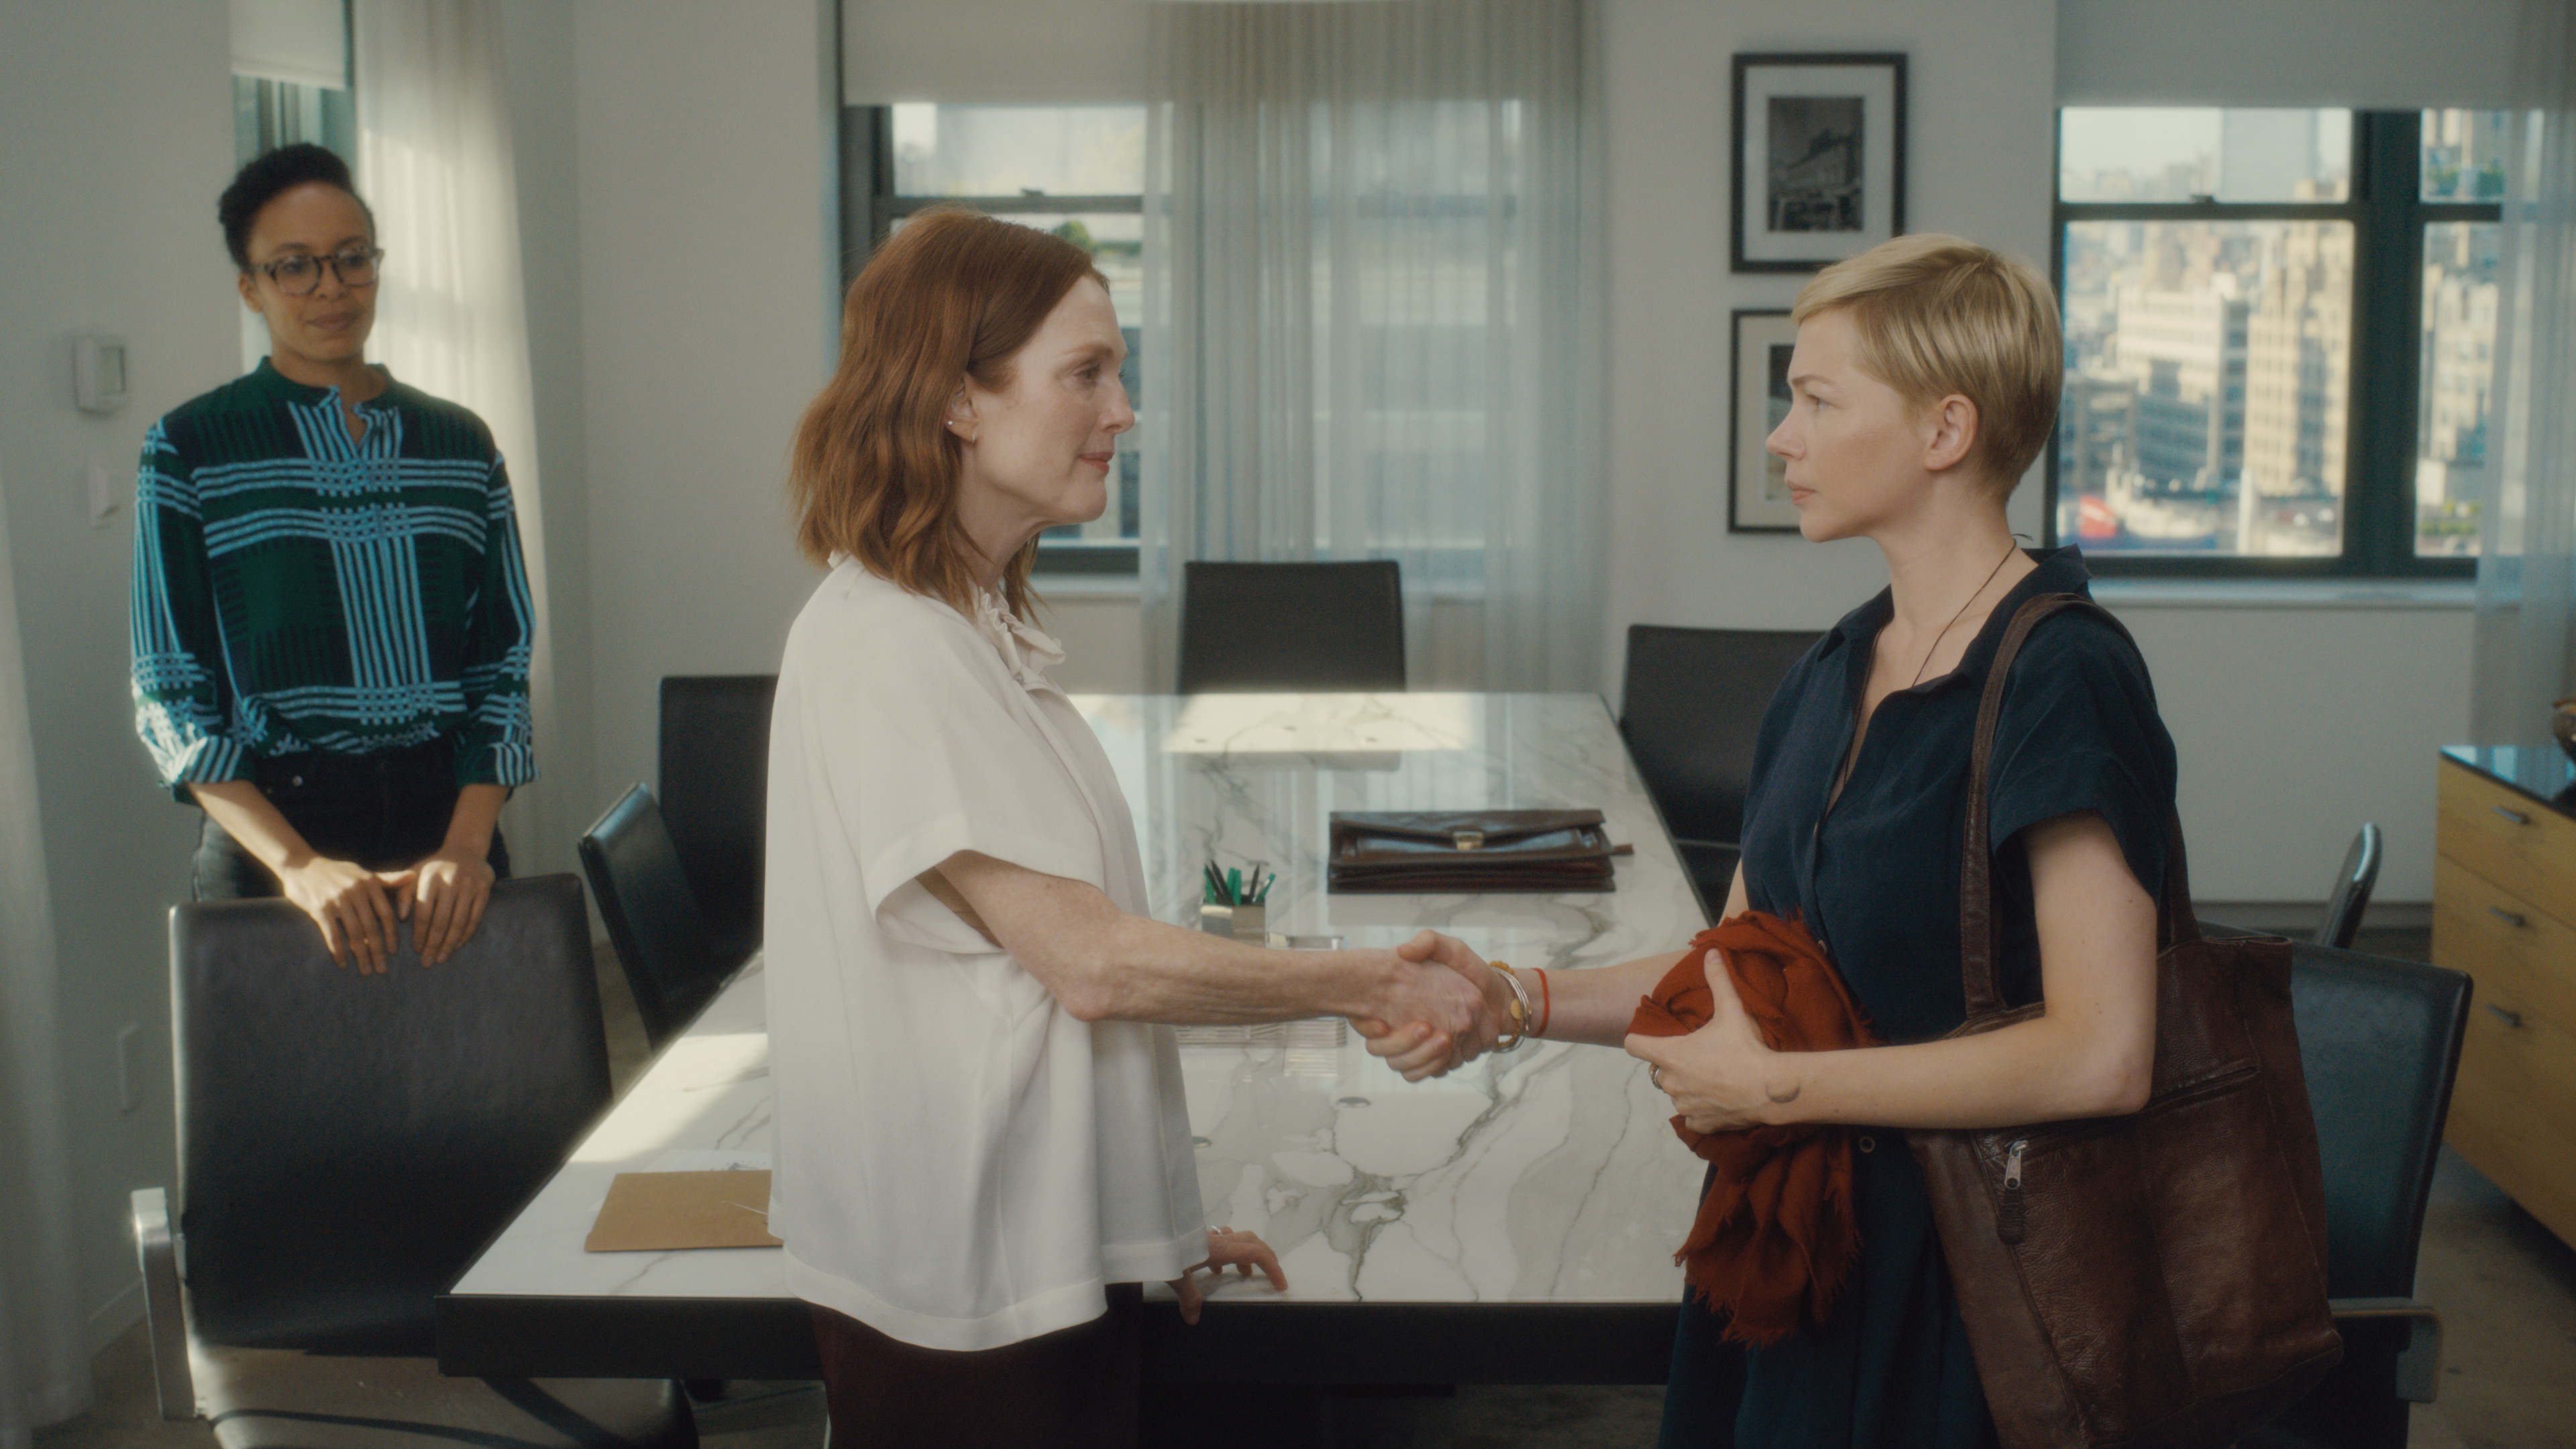 Le maternità di Julianne Moore e Michelle Williams